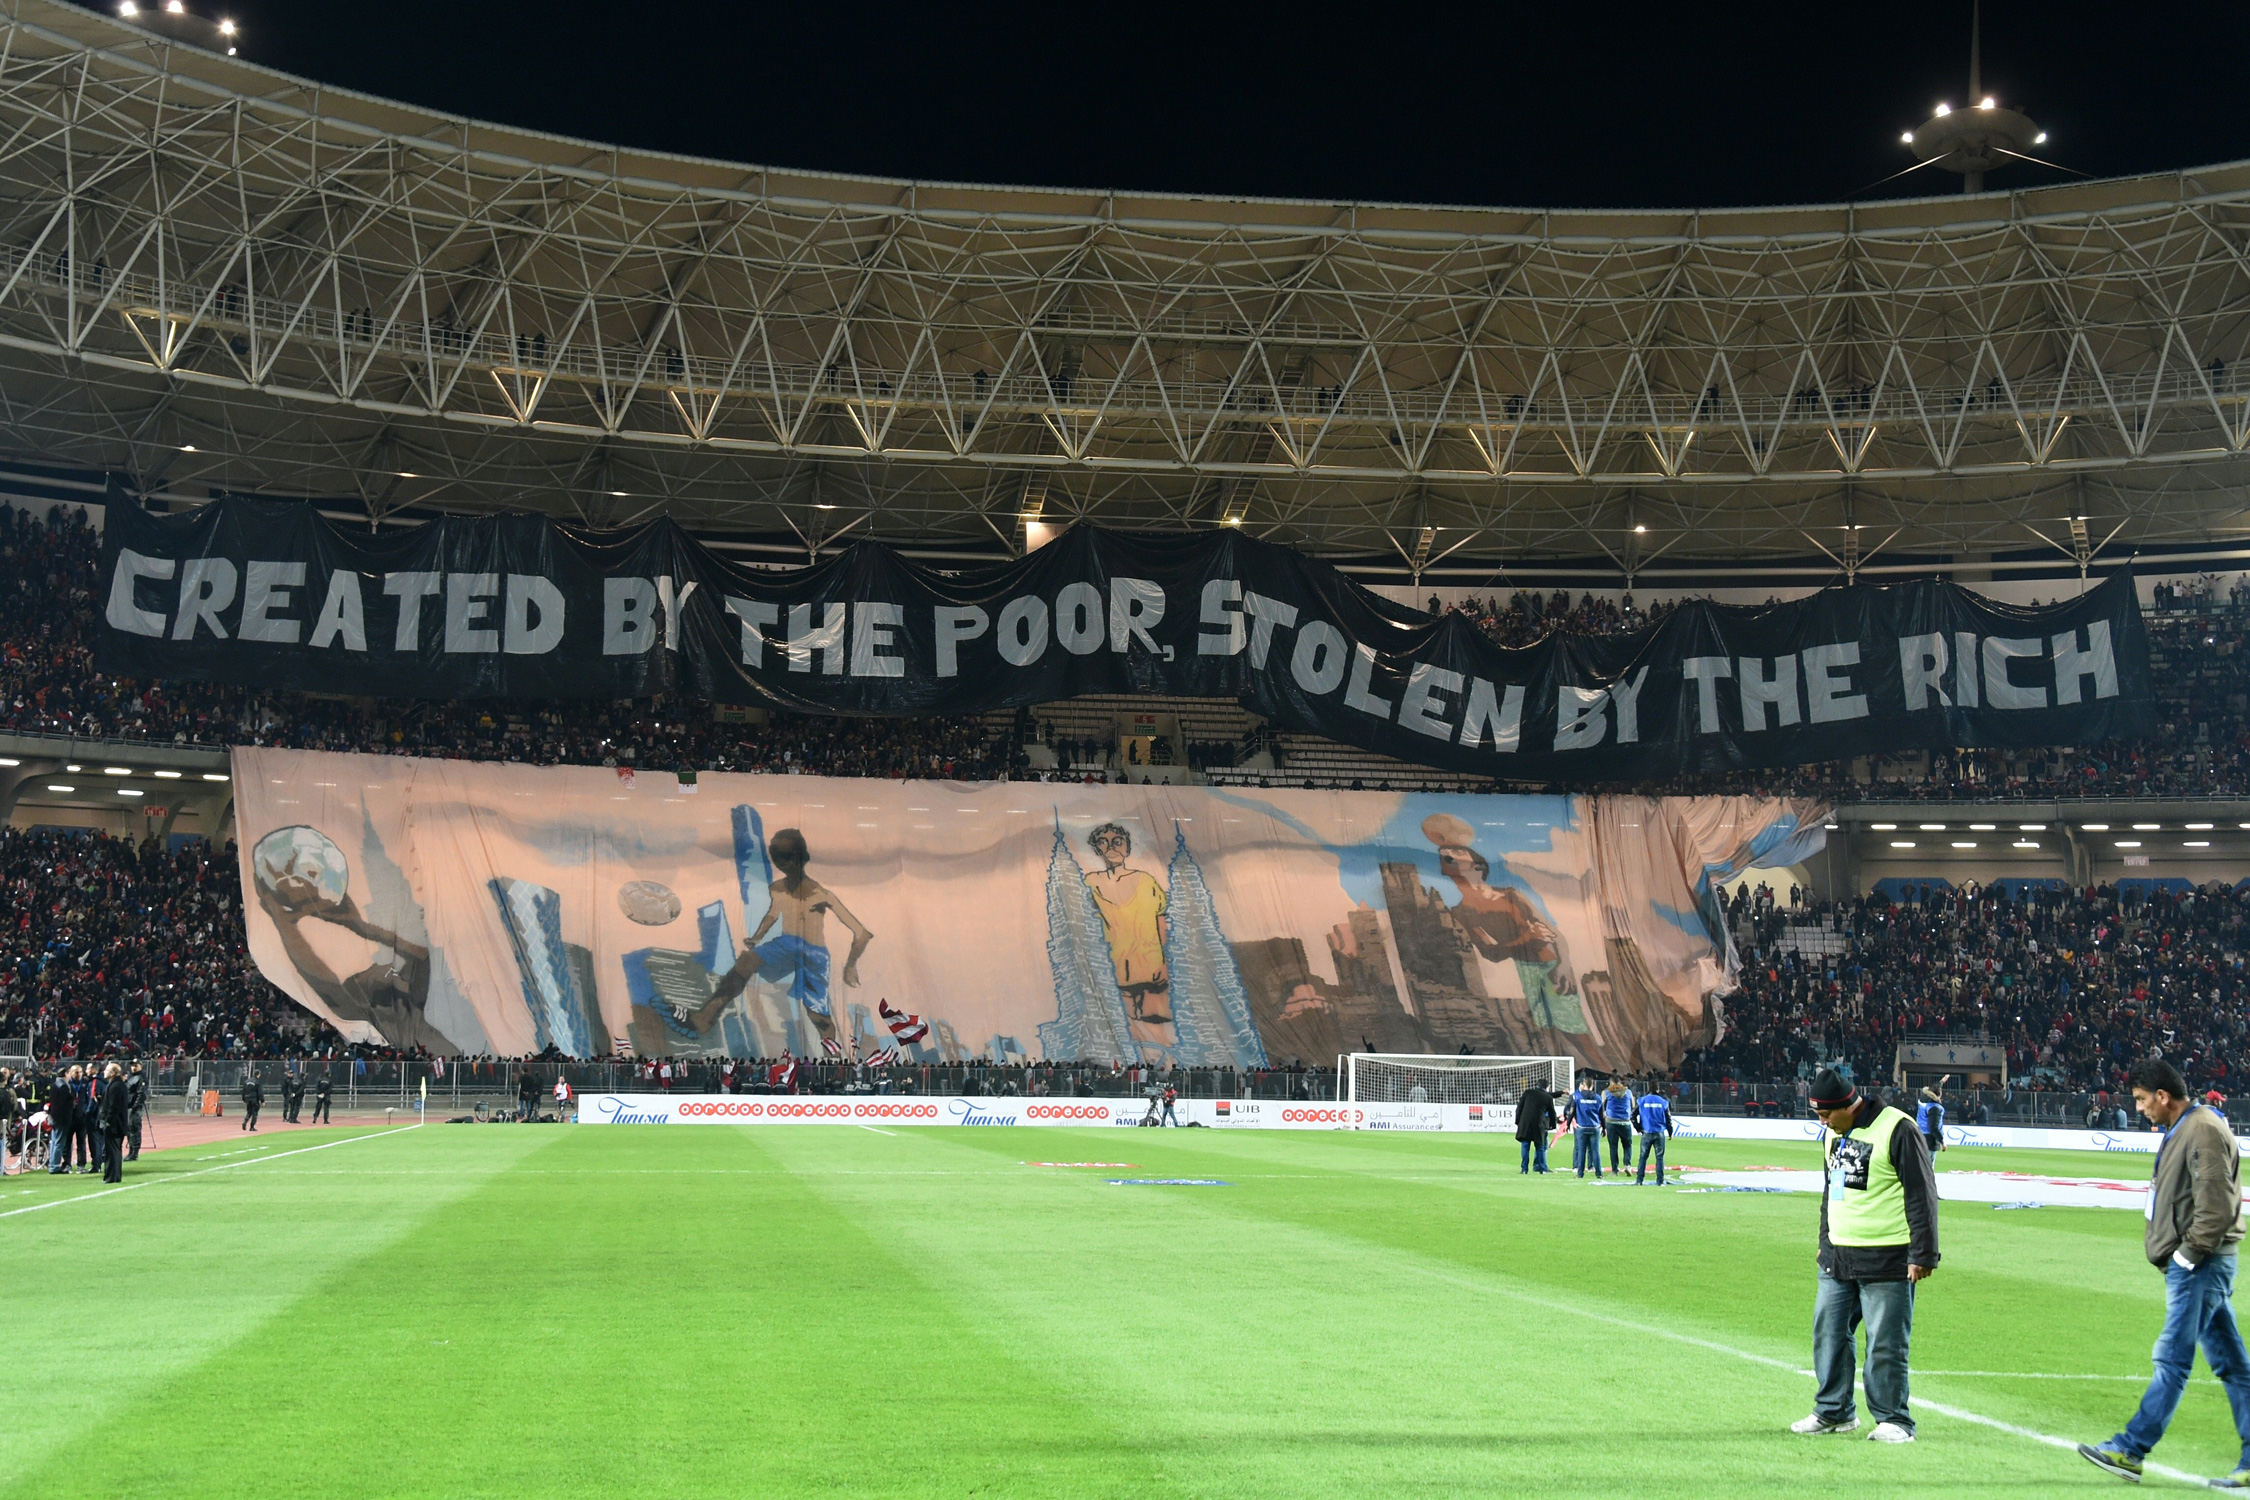 Fans of Tunisia's Club Africain display this pointed tifo at a friendly against PSG, whose Qatari owners have pumped millions and millions into the club.